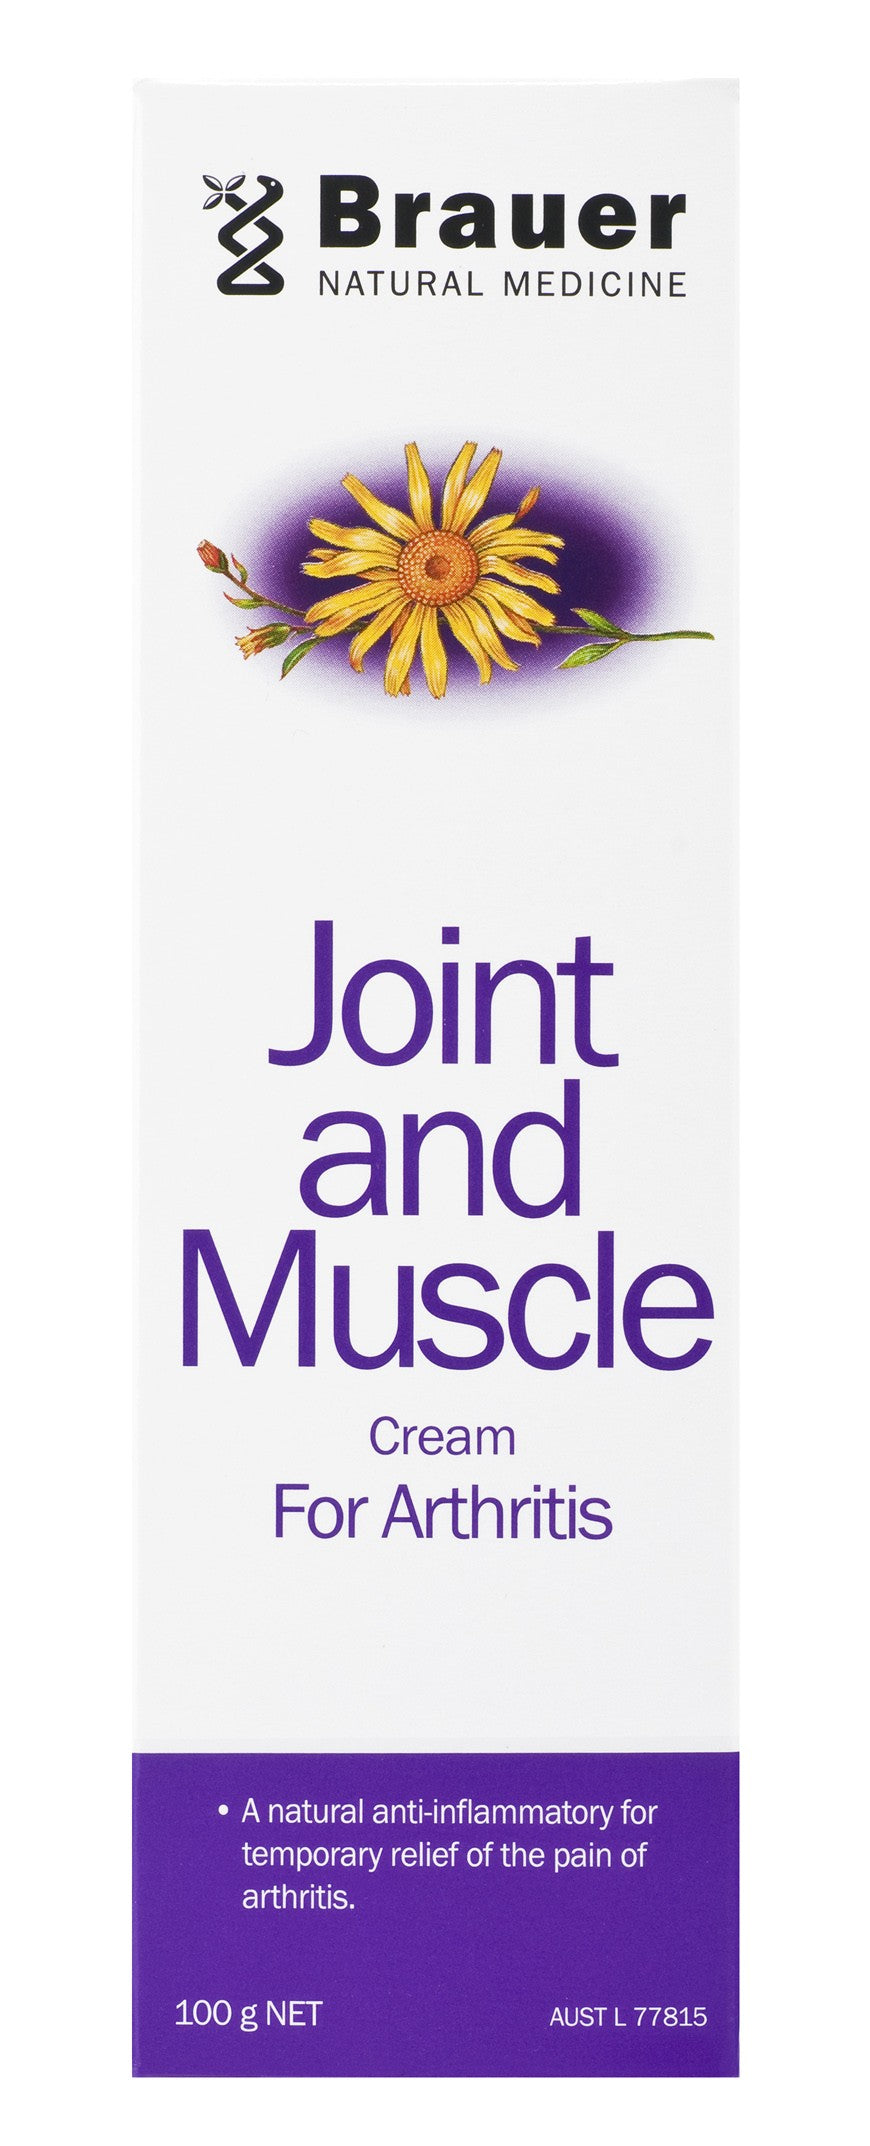 Brauer Natural Medicine, Arnicaeze, Joint & Muscle Cream, 100 g